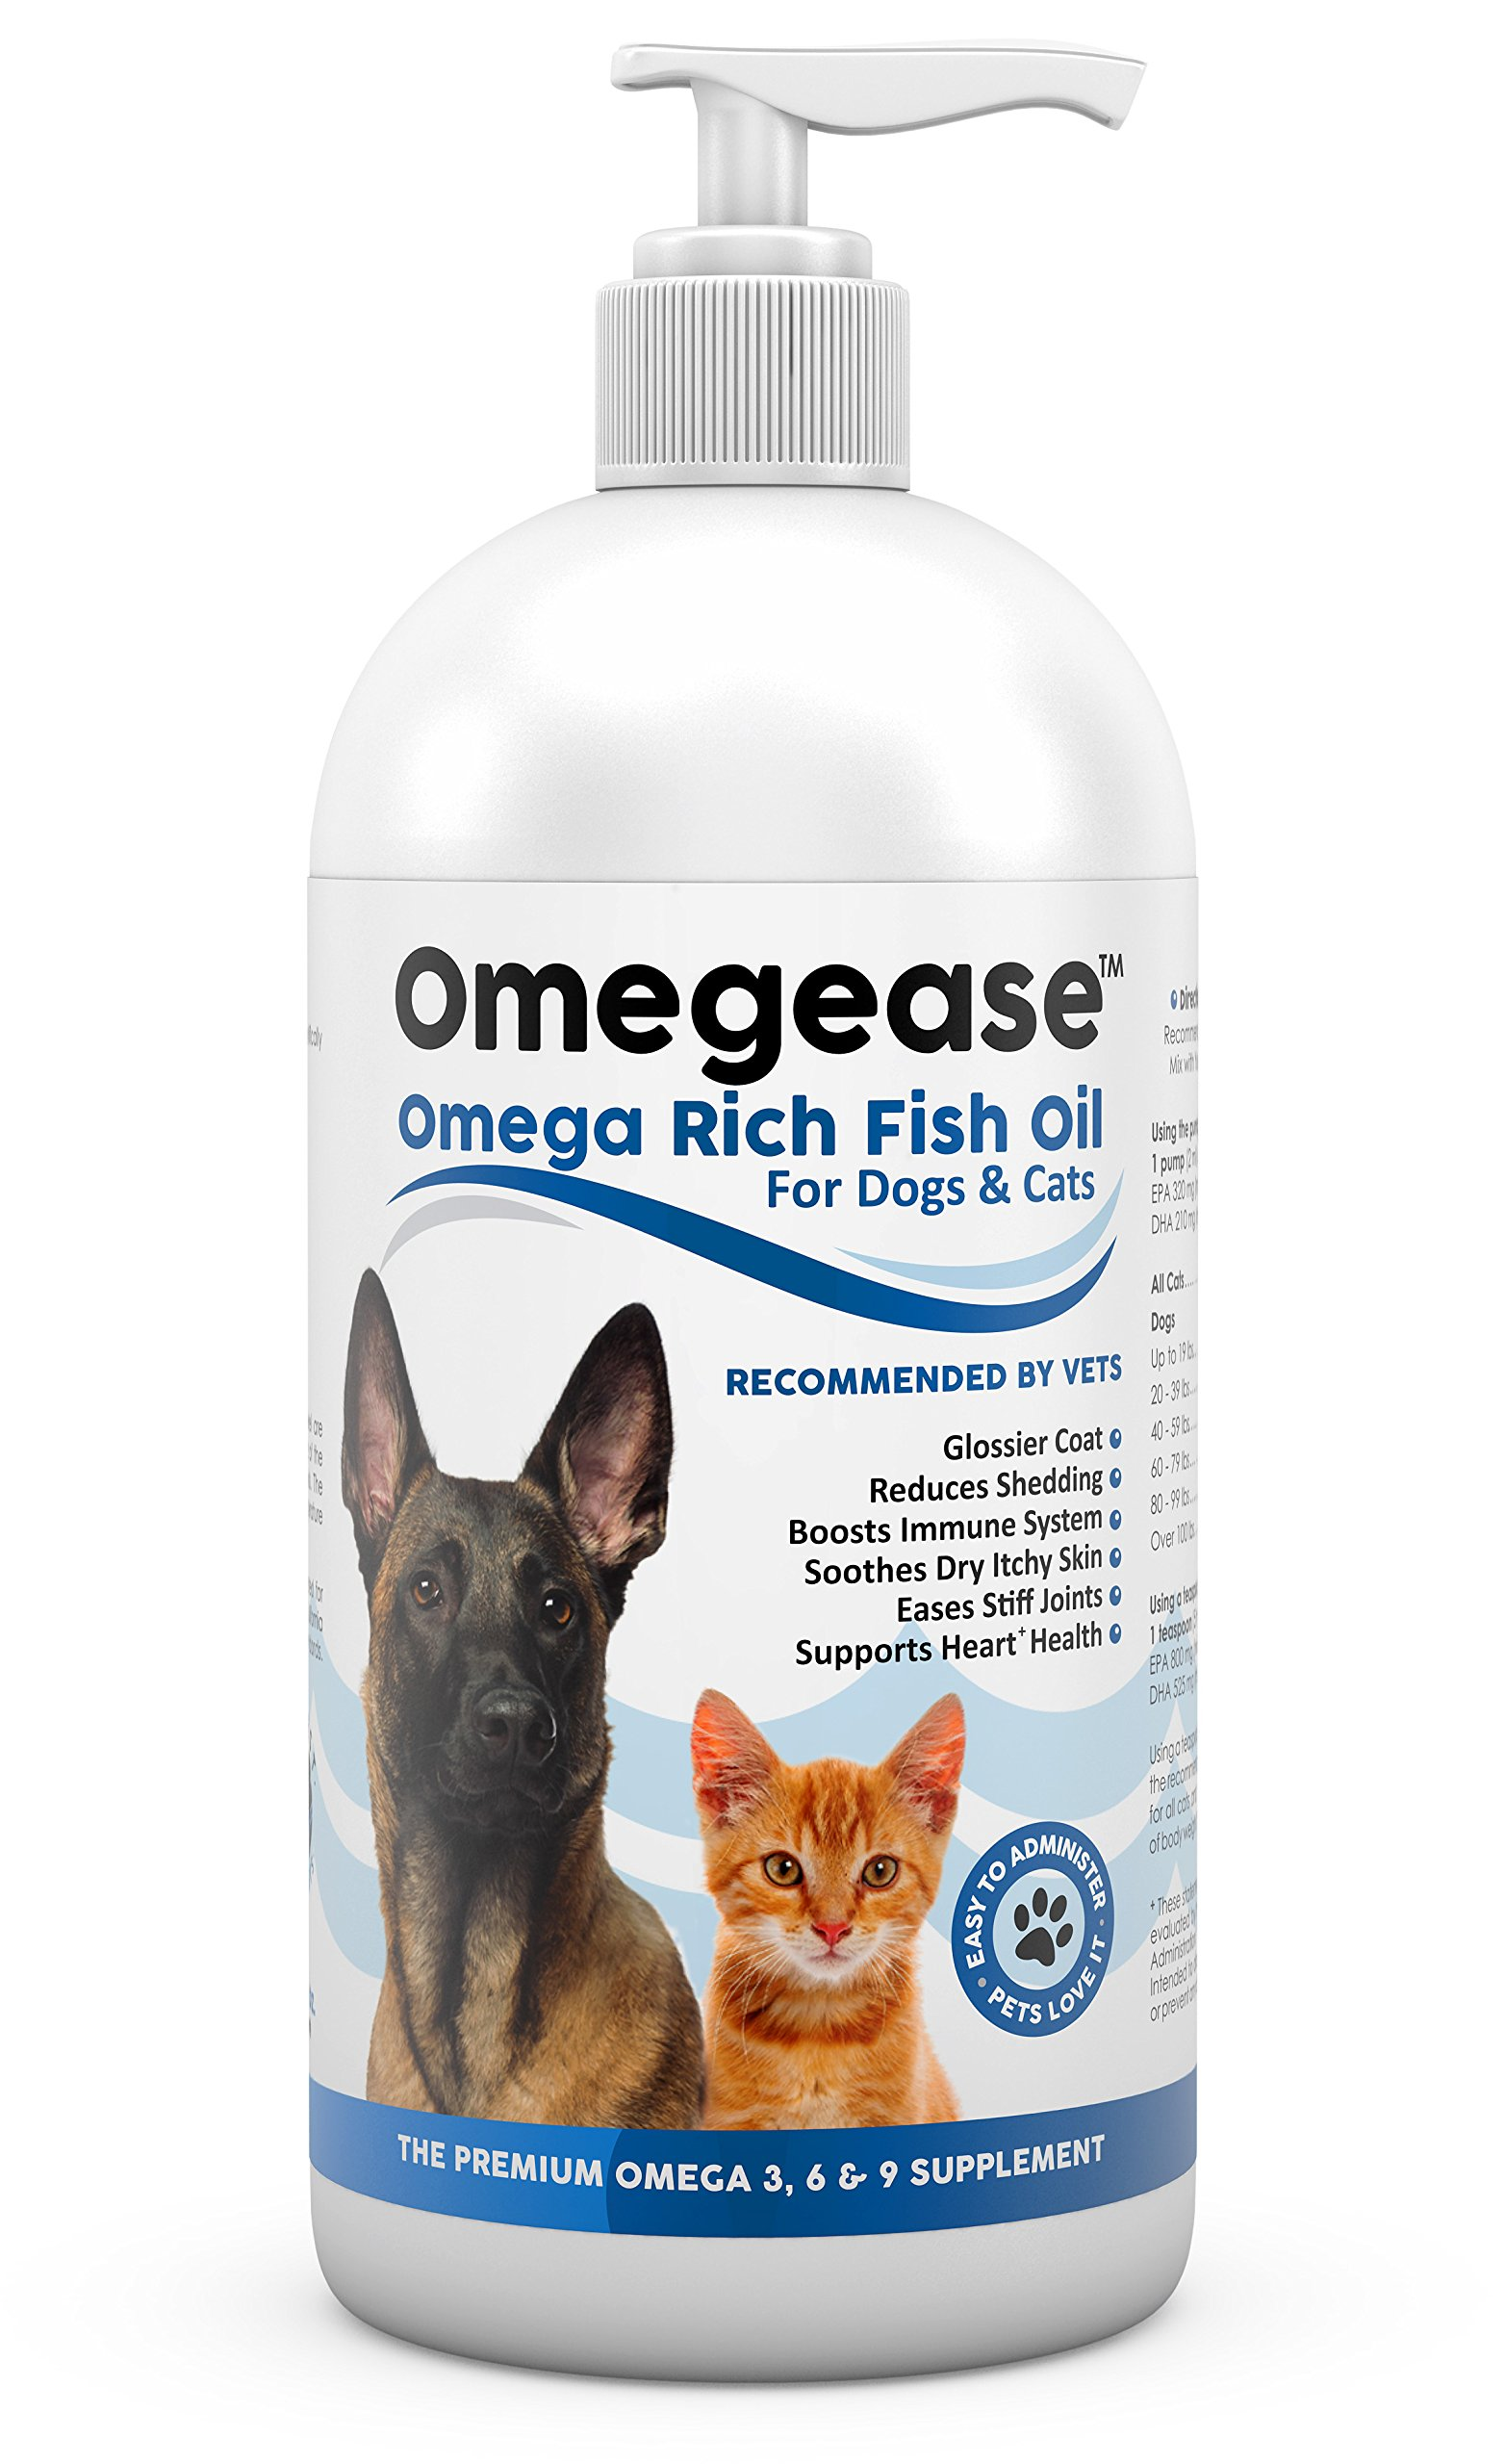 100% Pure Omega 3, 6 & 9 Fish Oil for Dogs and Cats. Supports Joint Function, Immune & Heart Health. All Natural EPA + DHA Fatty Acids for Skin & Coat. Liquid Food Supplement for Pets - 32 oz by Finest For Pets